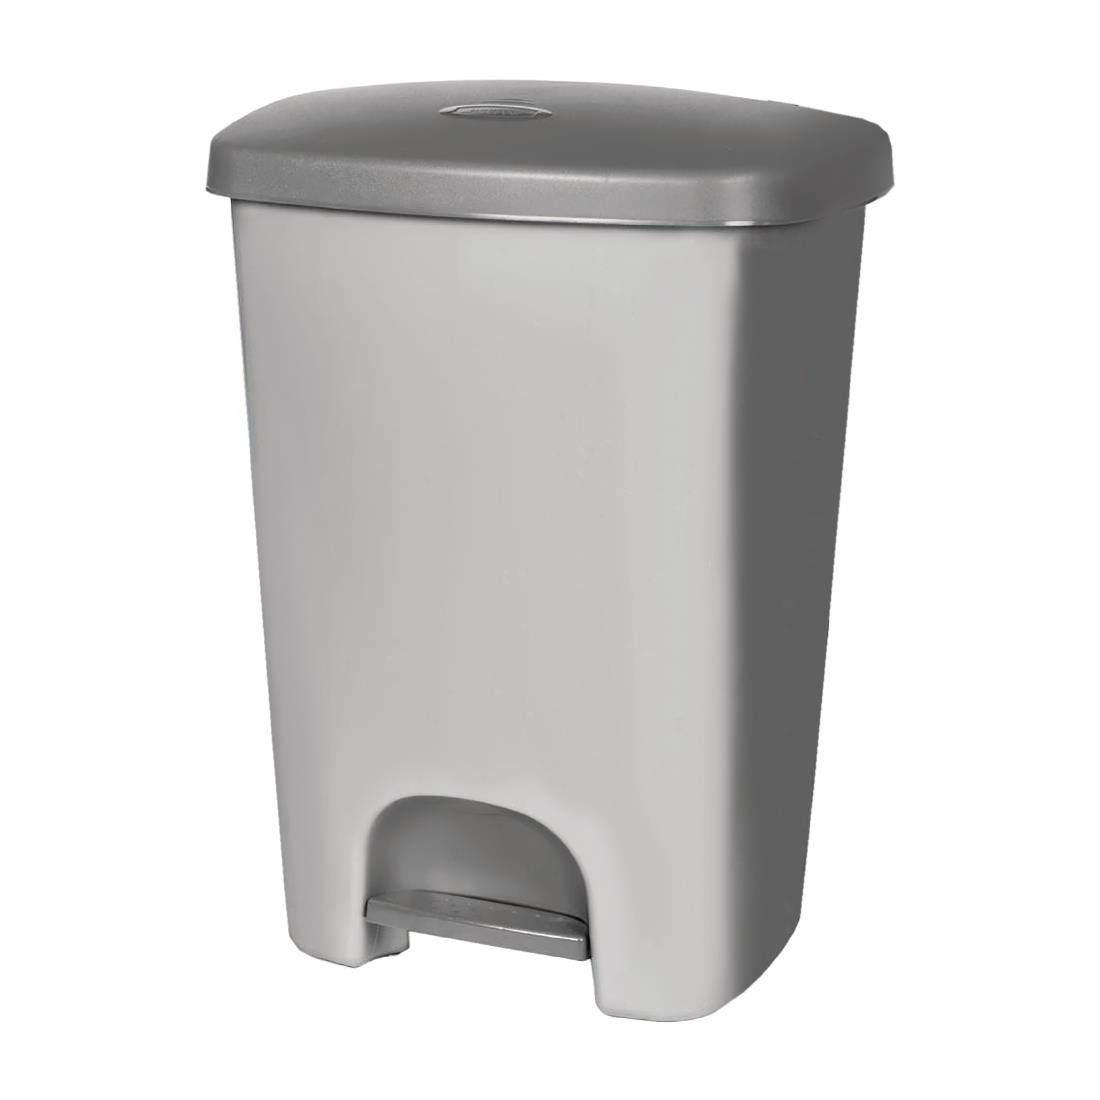 Image of Curver Kitchen Pedal Bin Grey 40Ltr